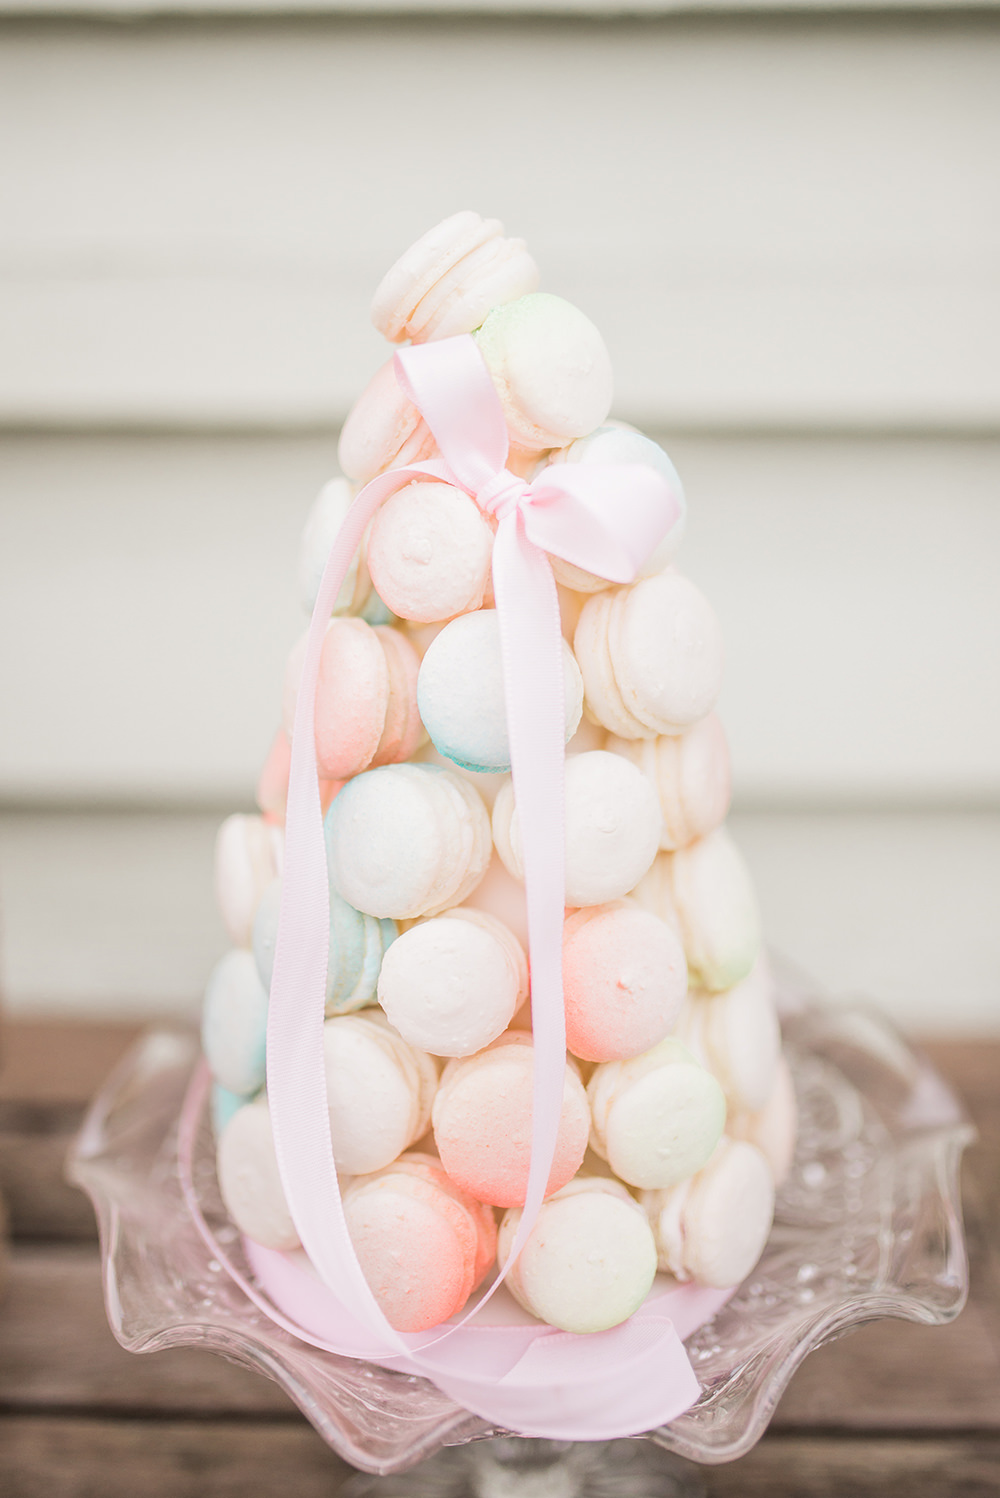 Macaron Tower Pastel Ribbon Springtime Bridal Shower Ideas Hen Party Laura Jane Photography